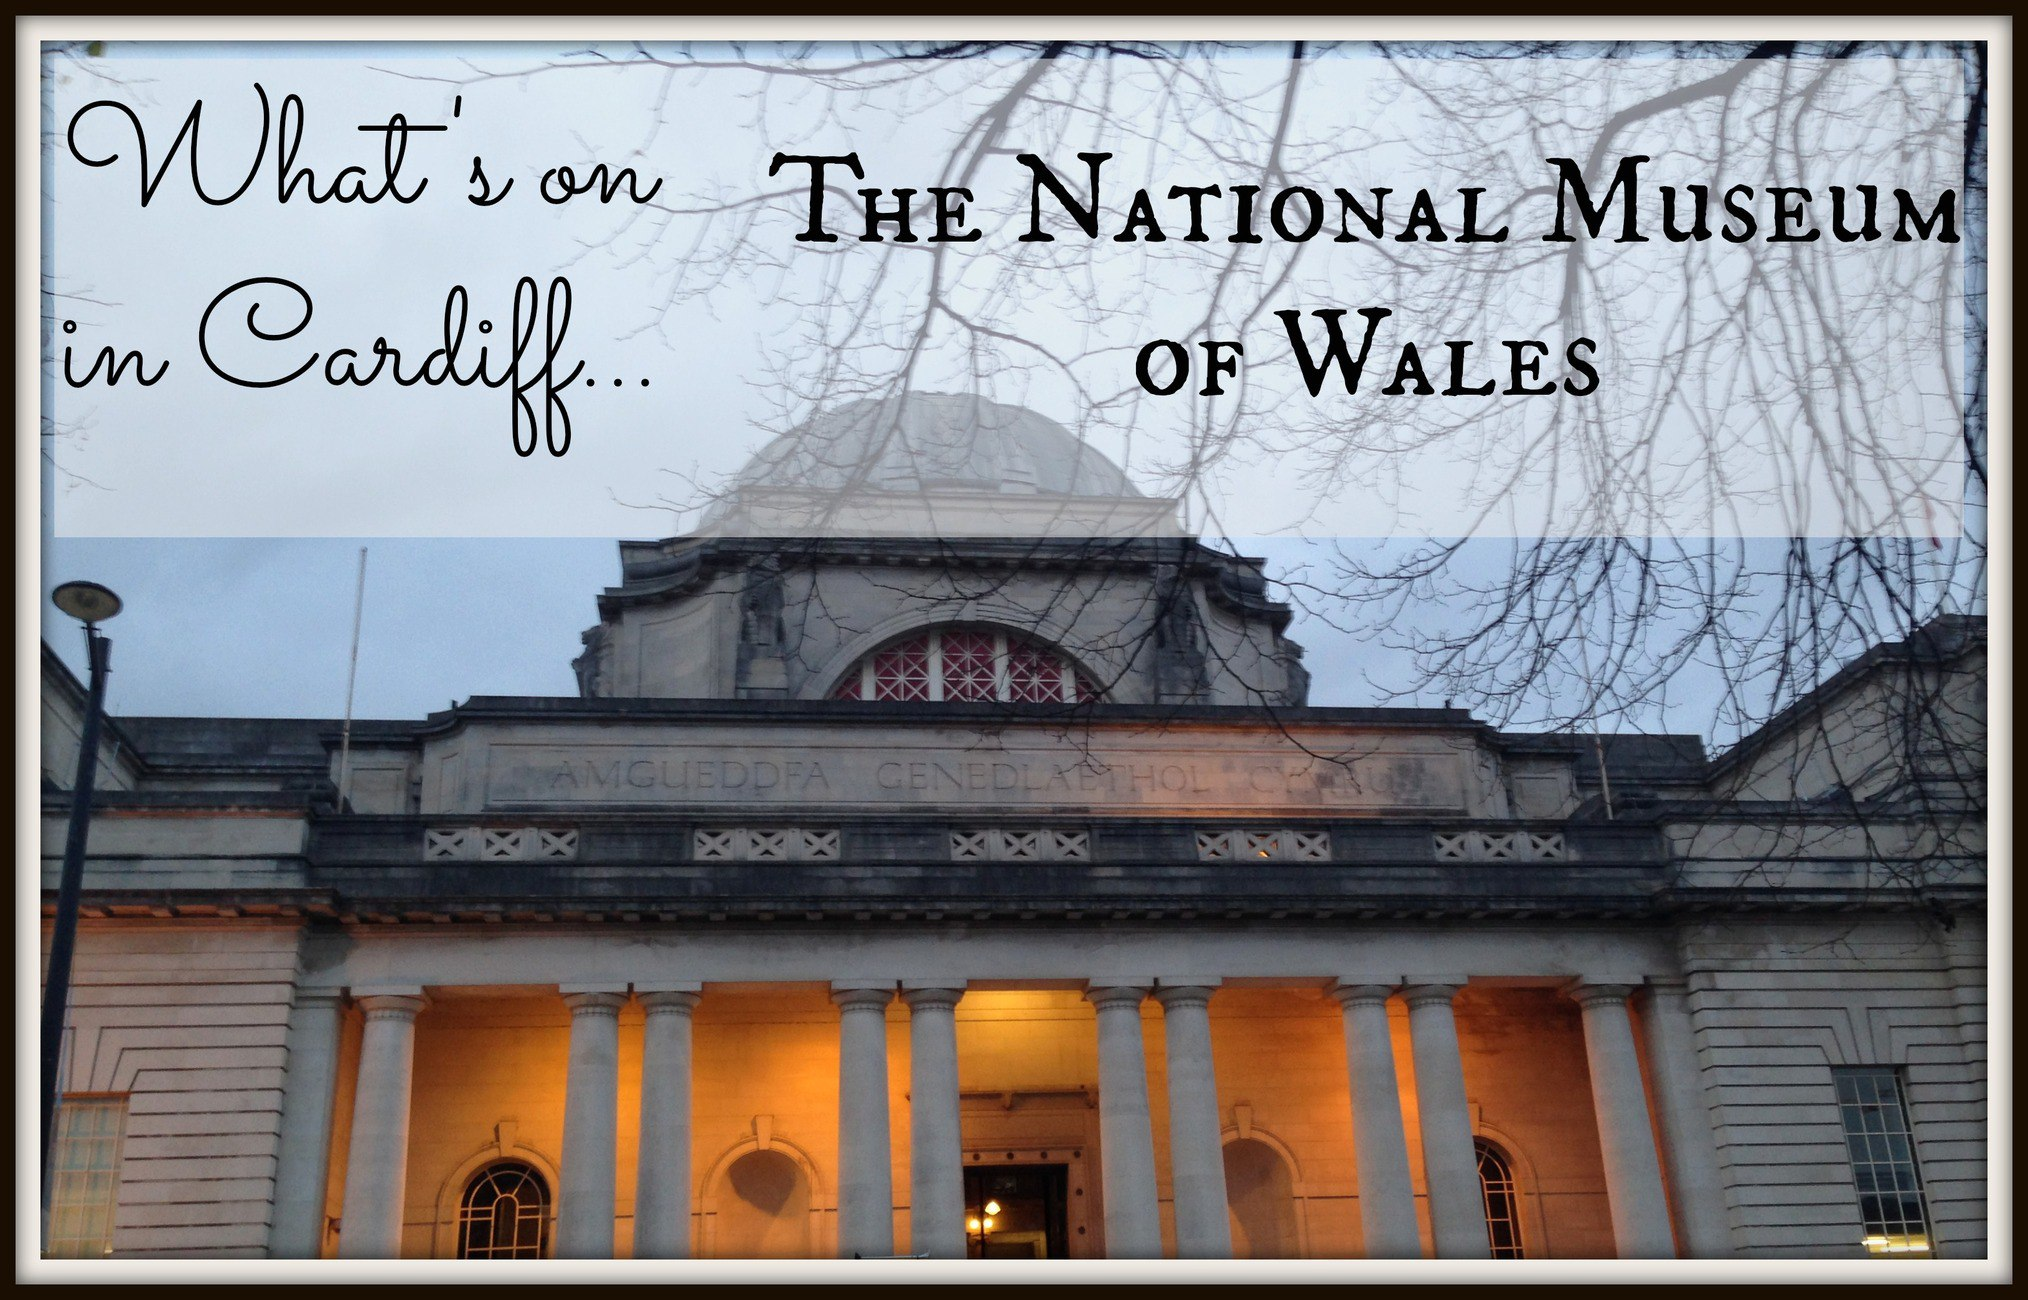 the national museum of wales